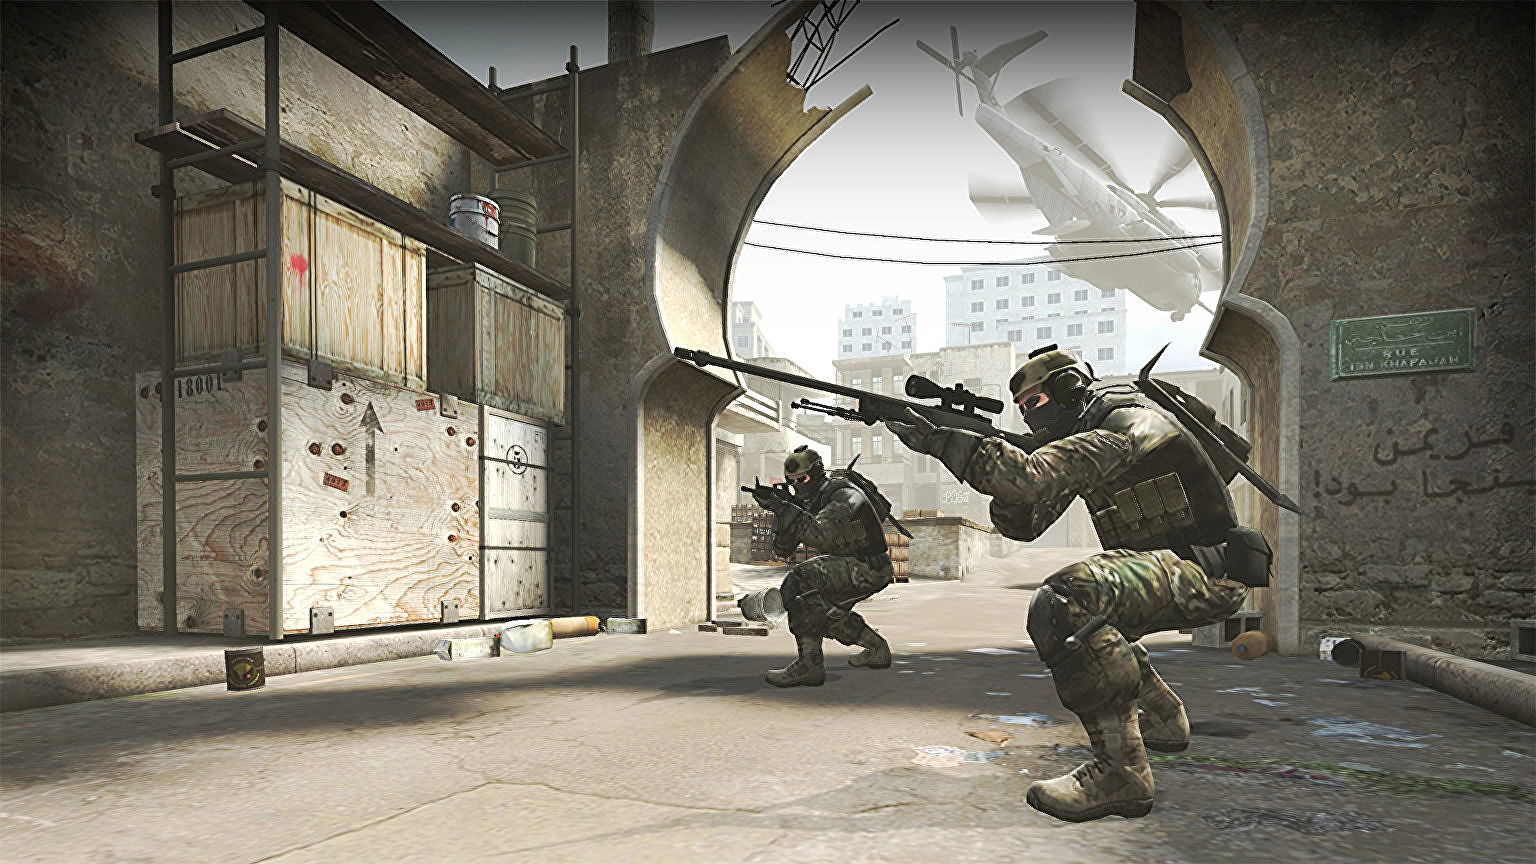 Counter-Strike: Global Offensive's Steam store page was briefly deleted